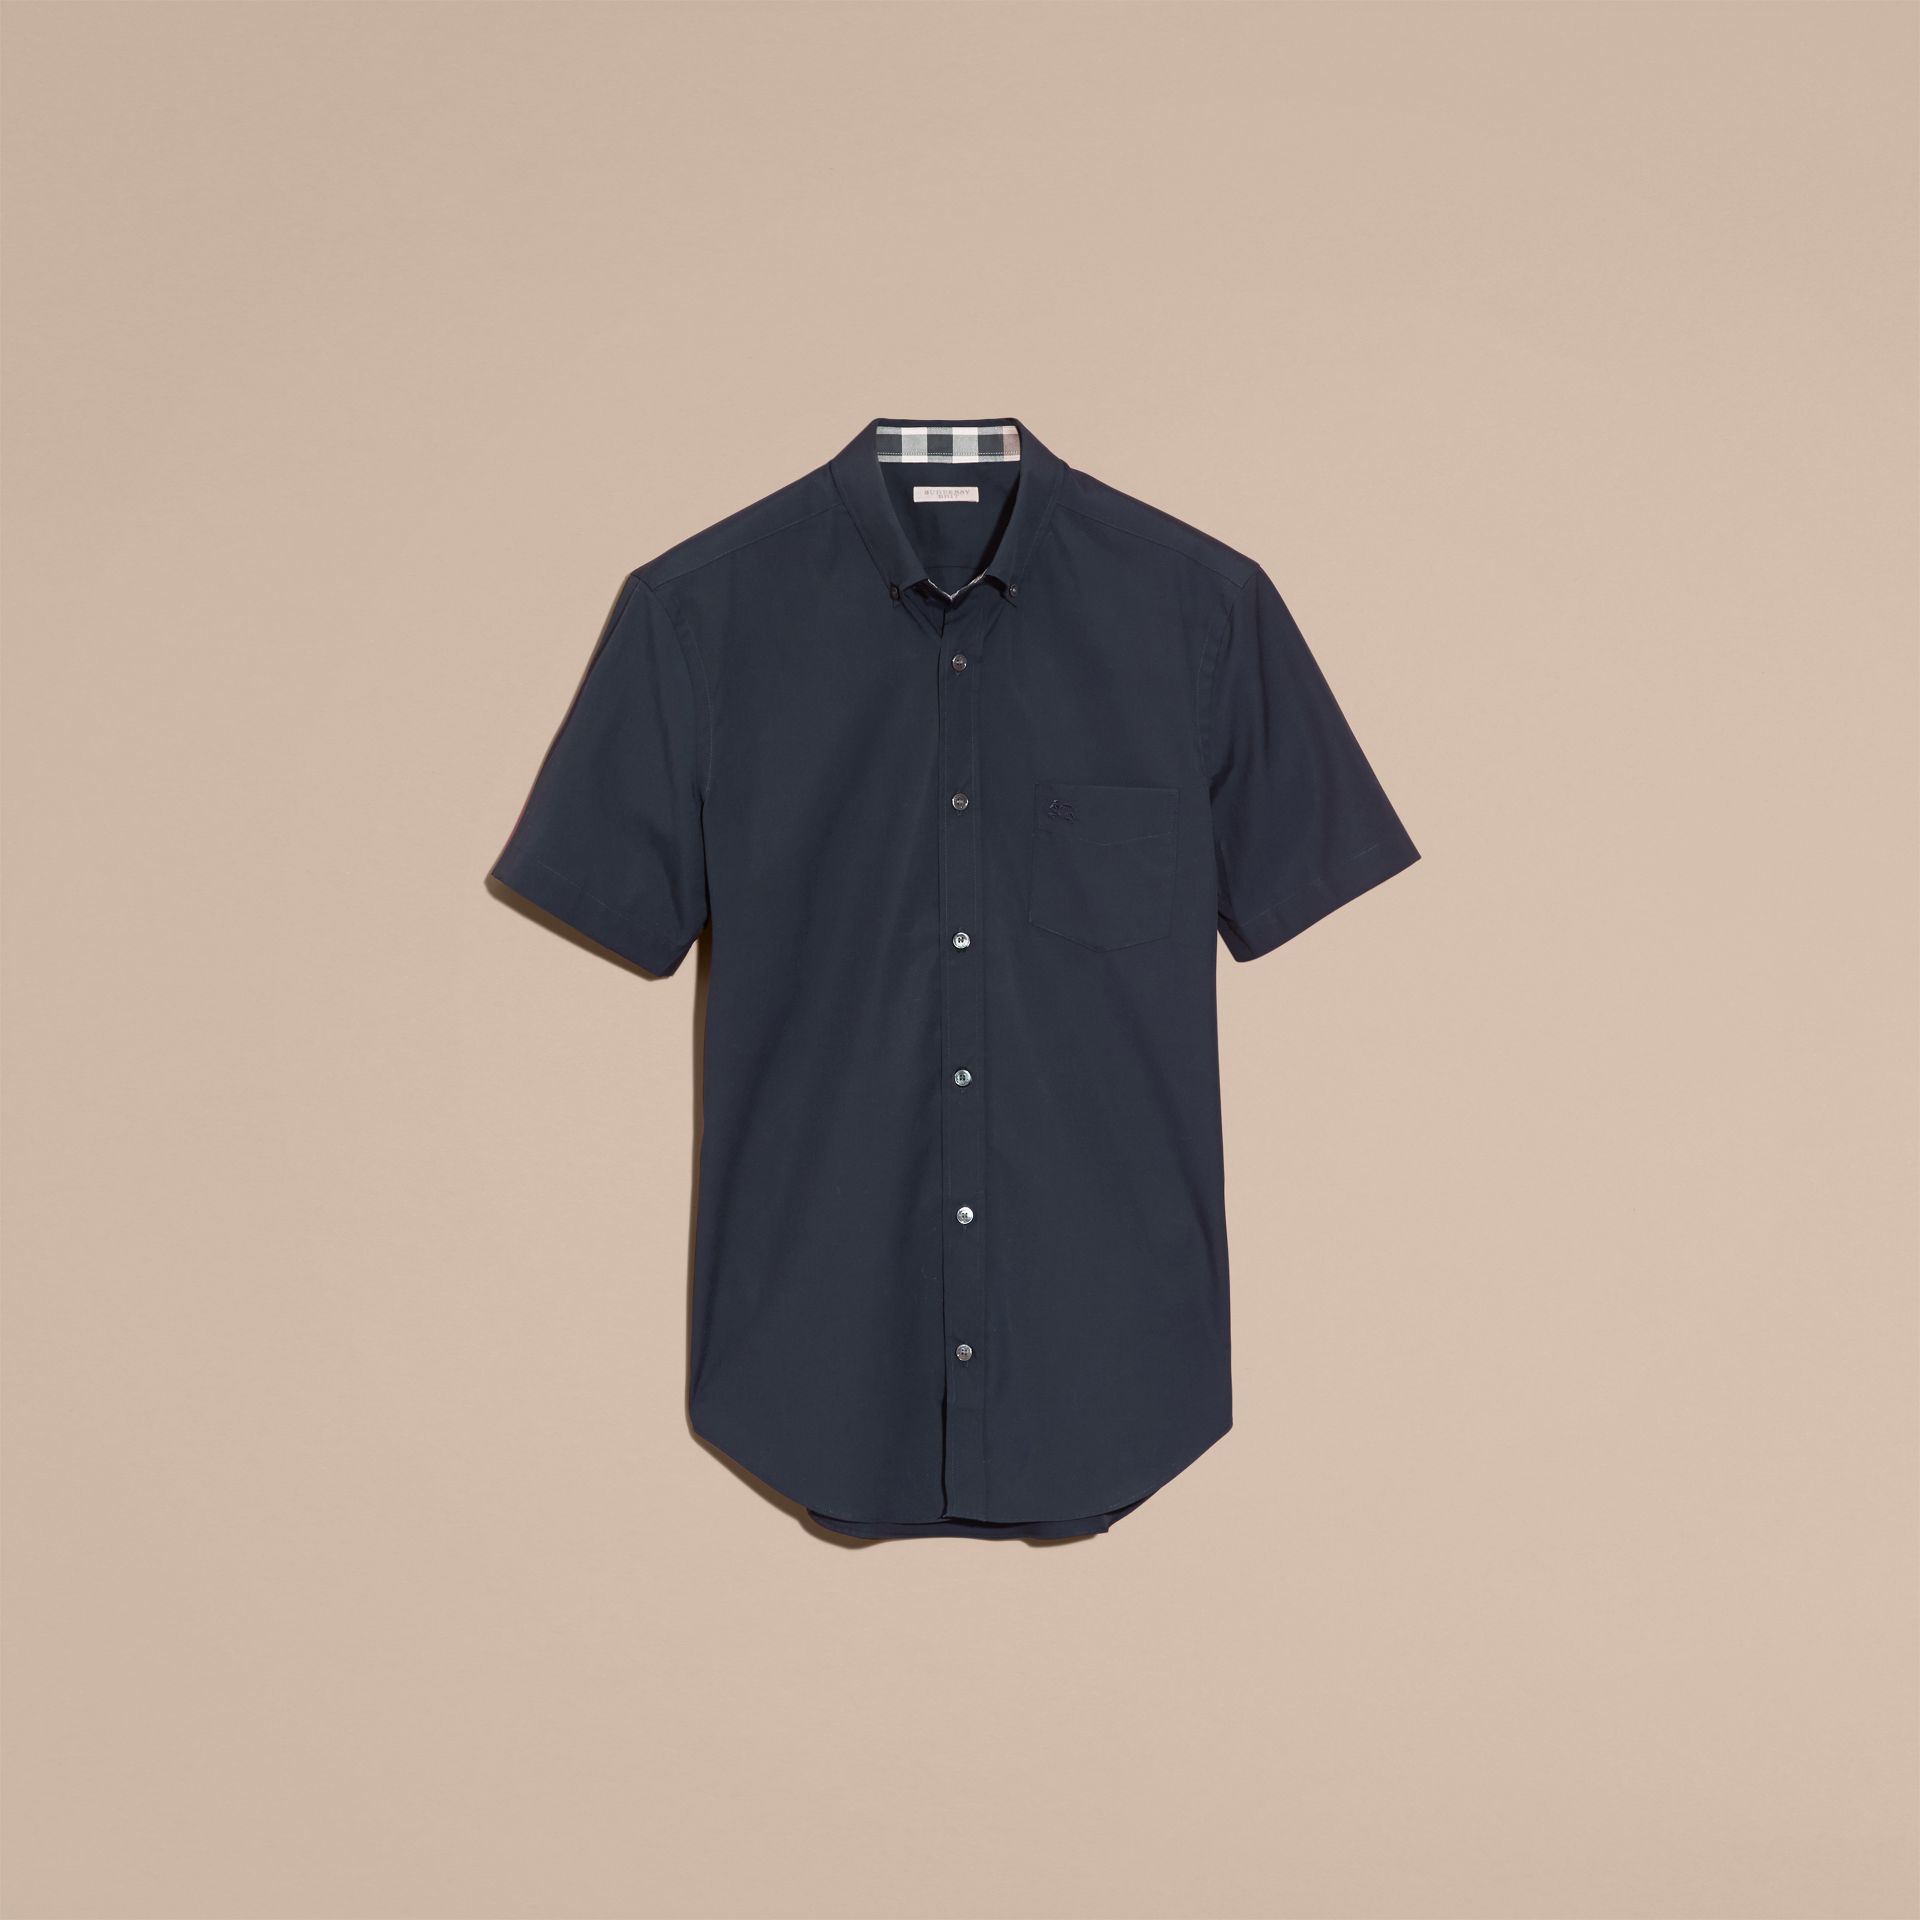 Navy Short-sleeved Stretch Cotton Poplin Shirt - gallery image 4